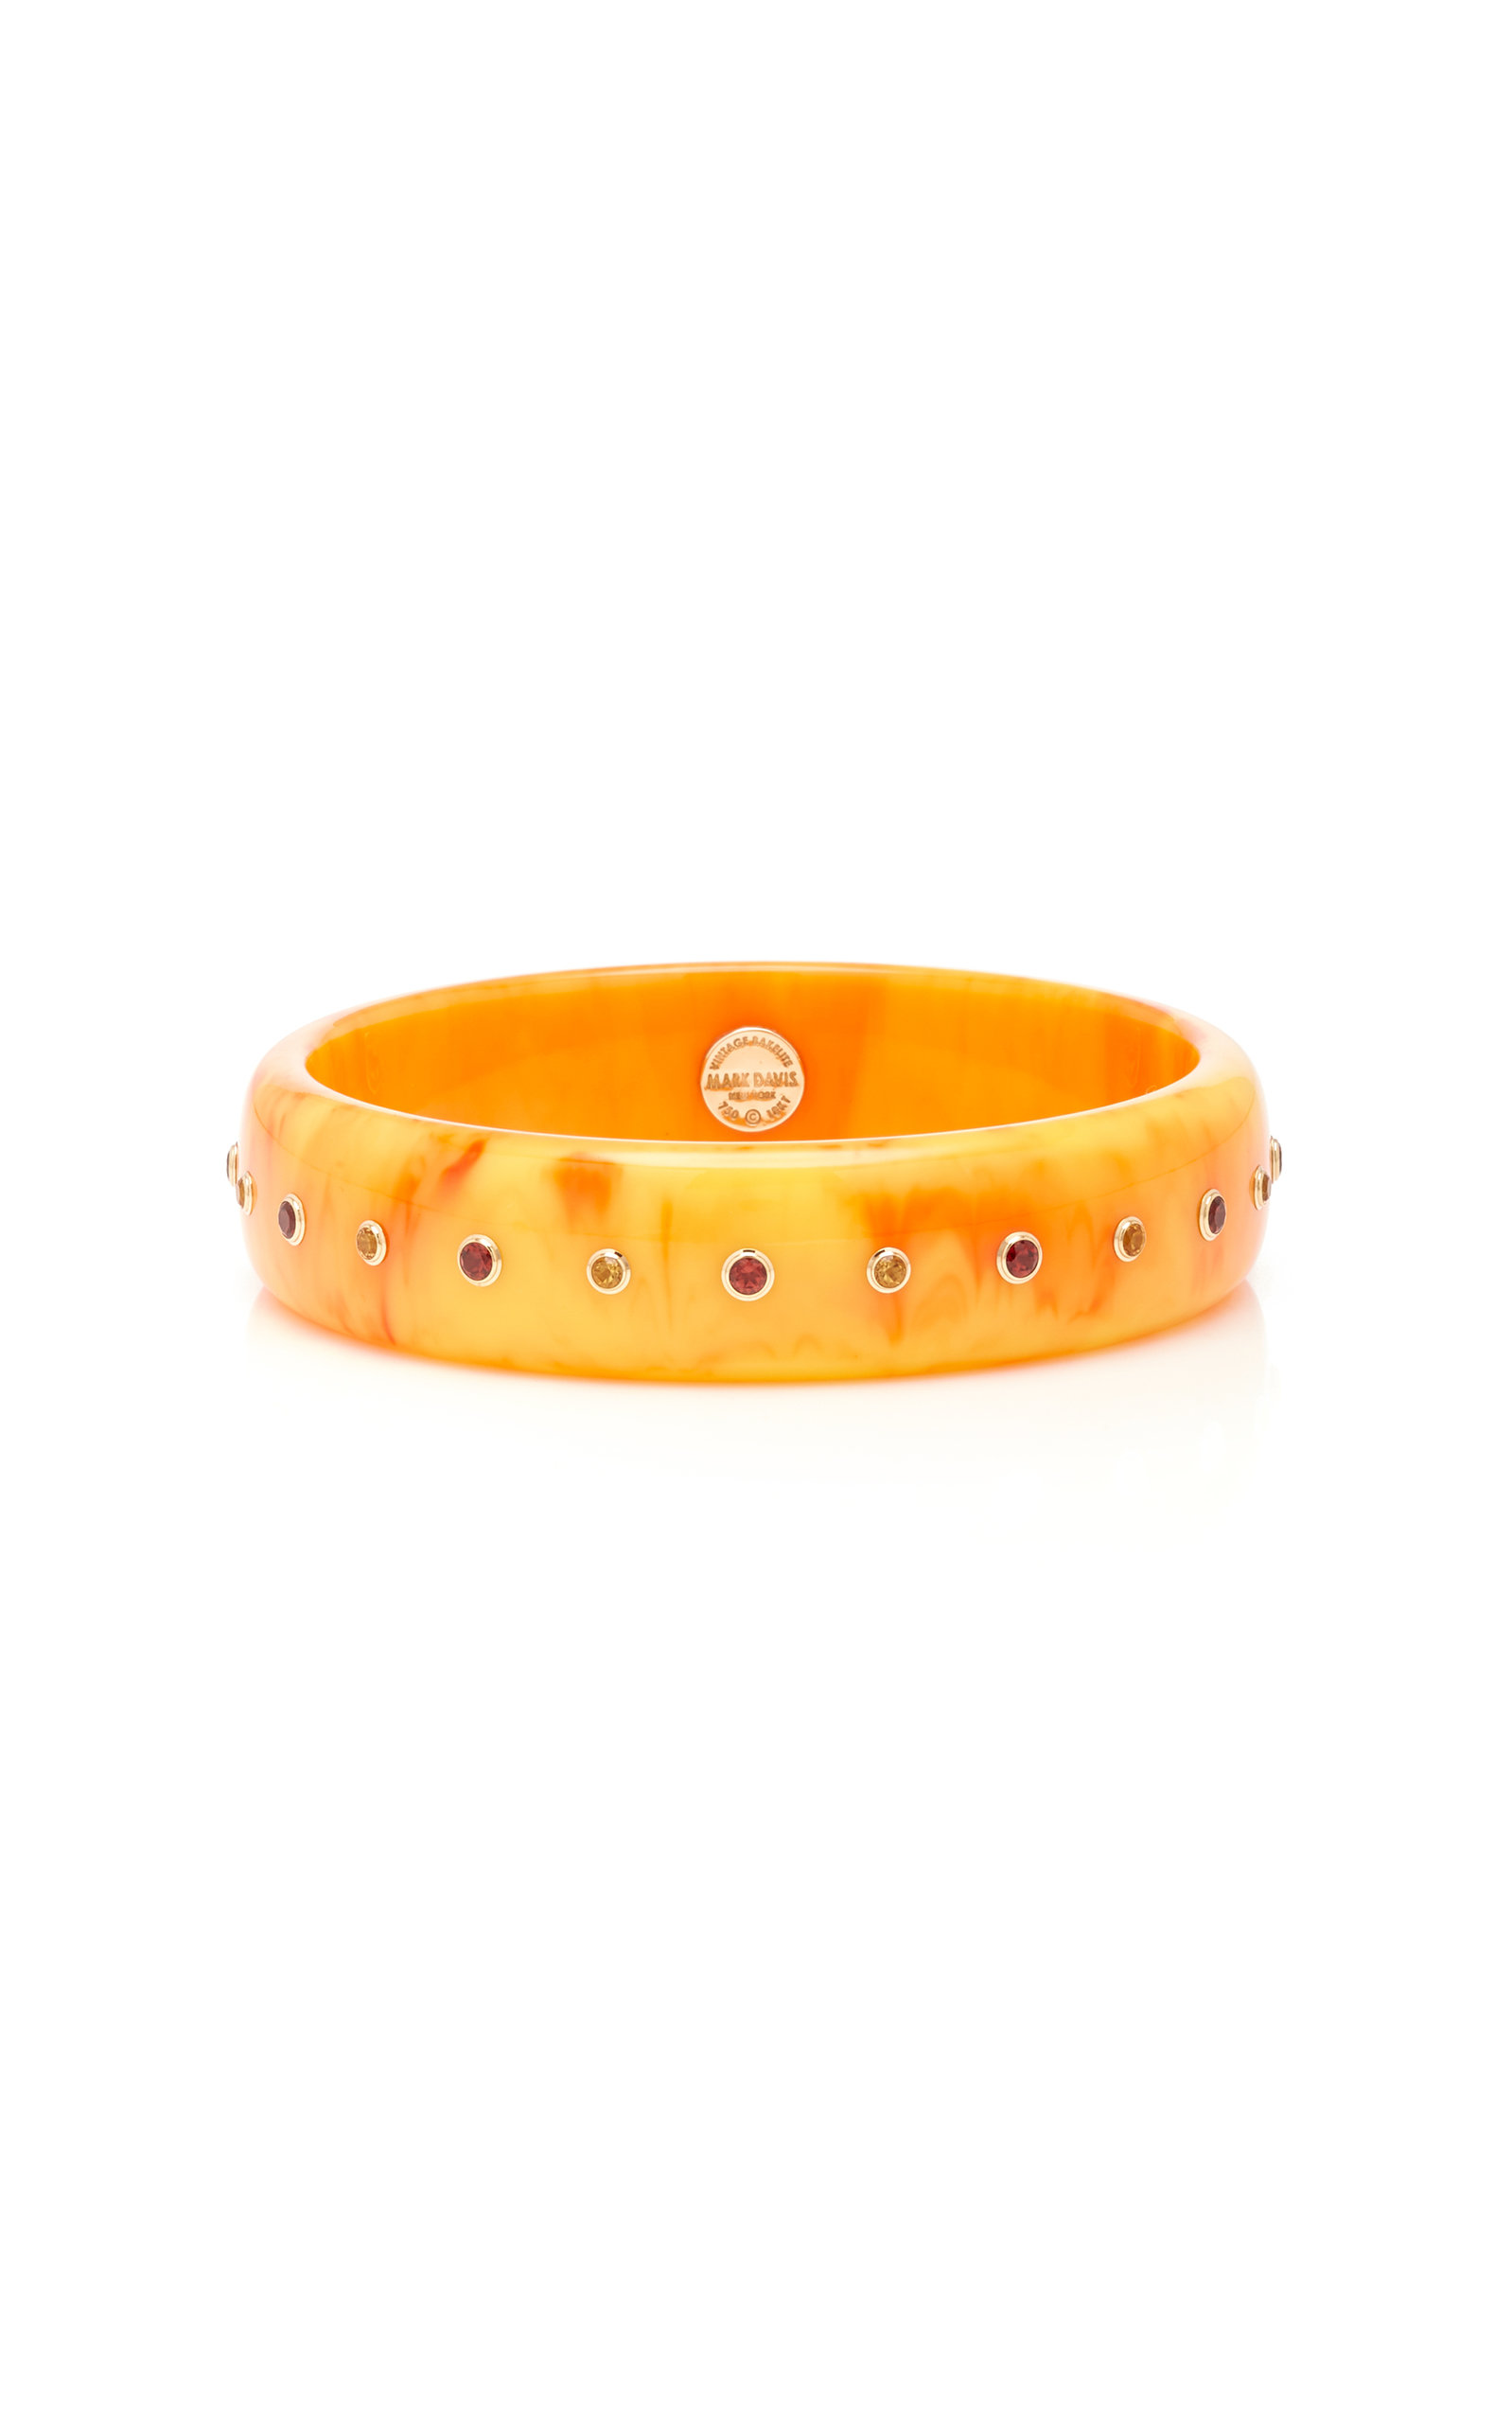 MARK DAVIS M'O EXCLUSIVE: ONE-OF-A-KIND YELLOW EVELYN BRACELET